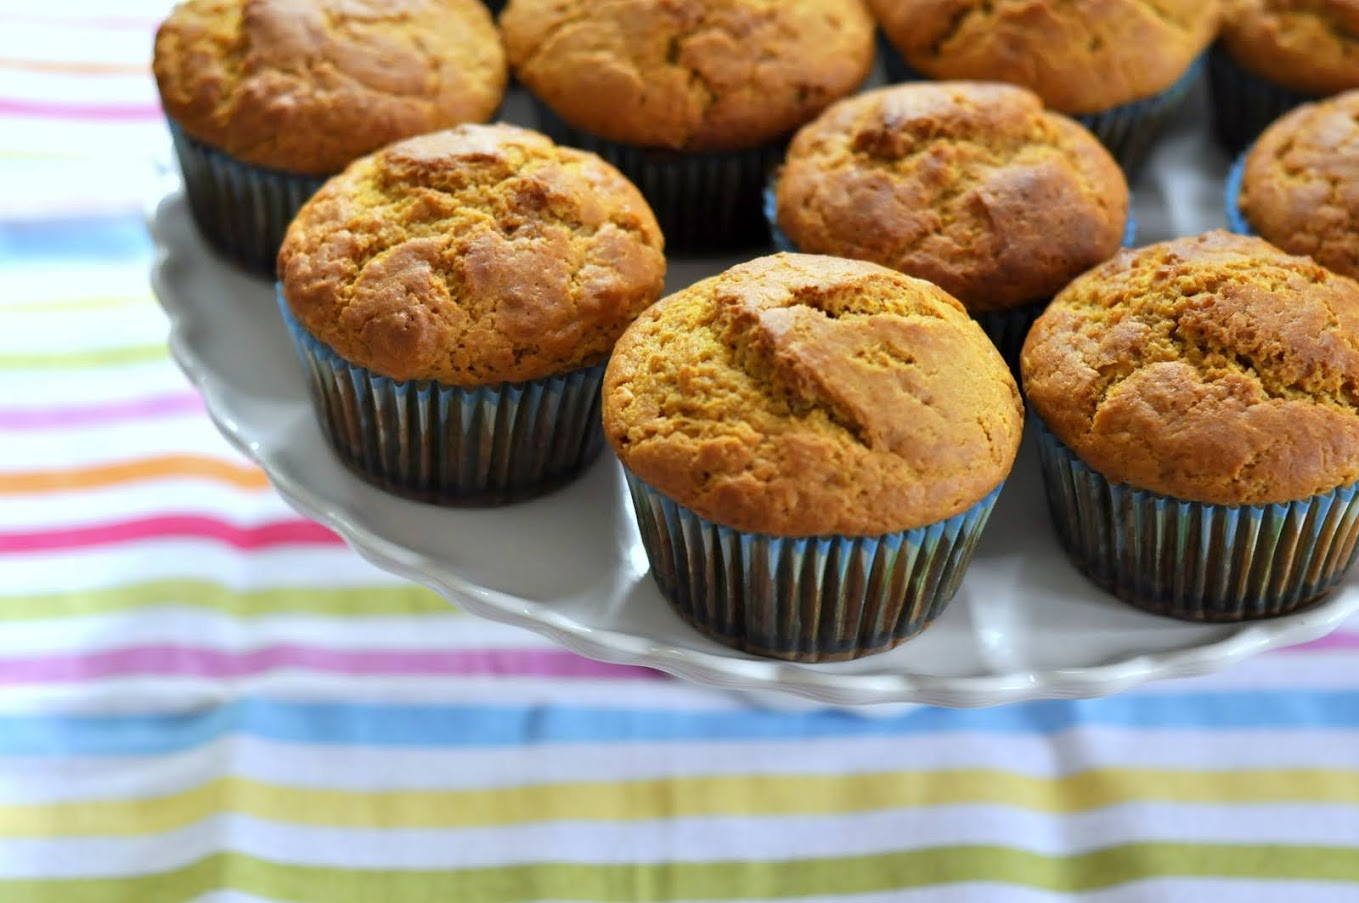 Ginger-Spiced Sweet Potato Muffins